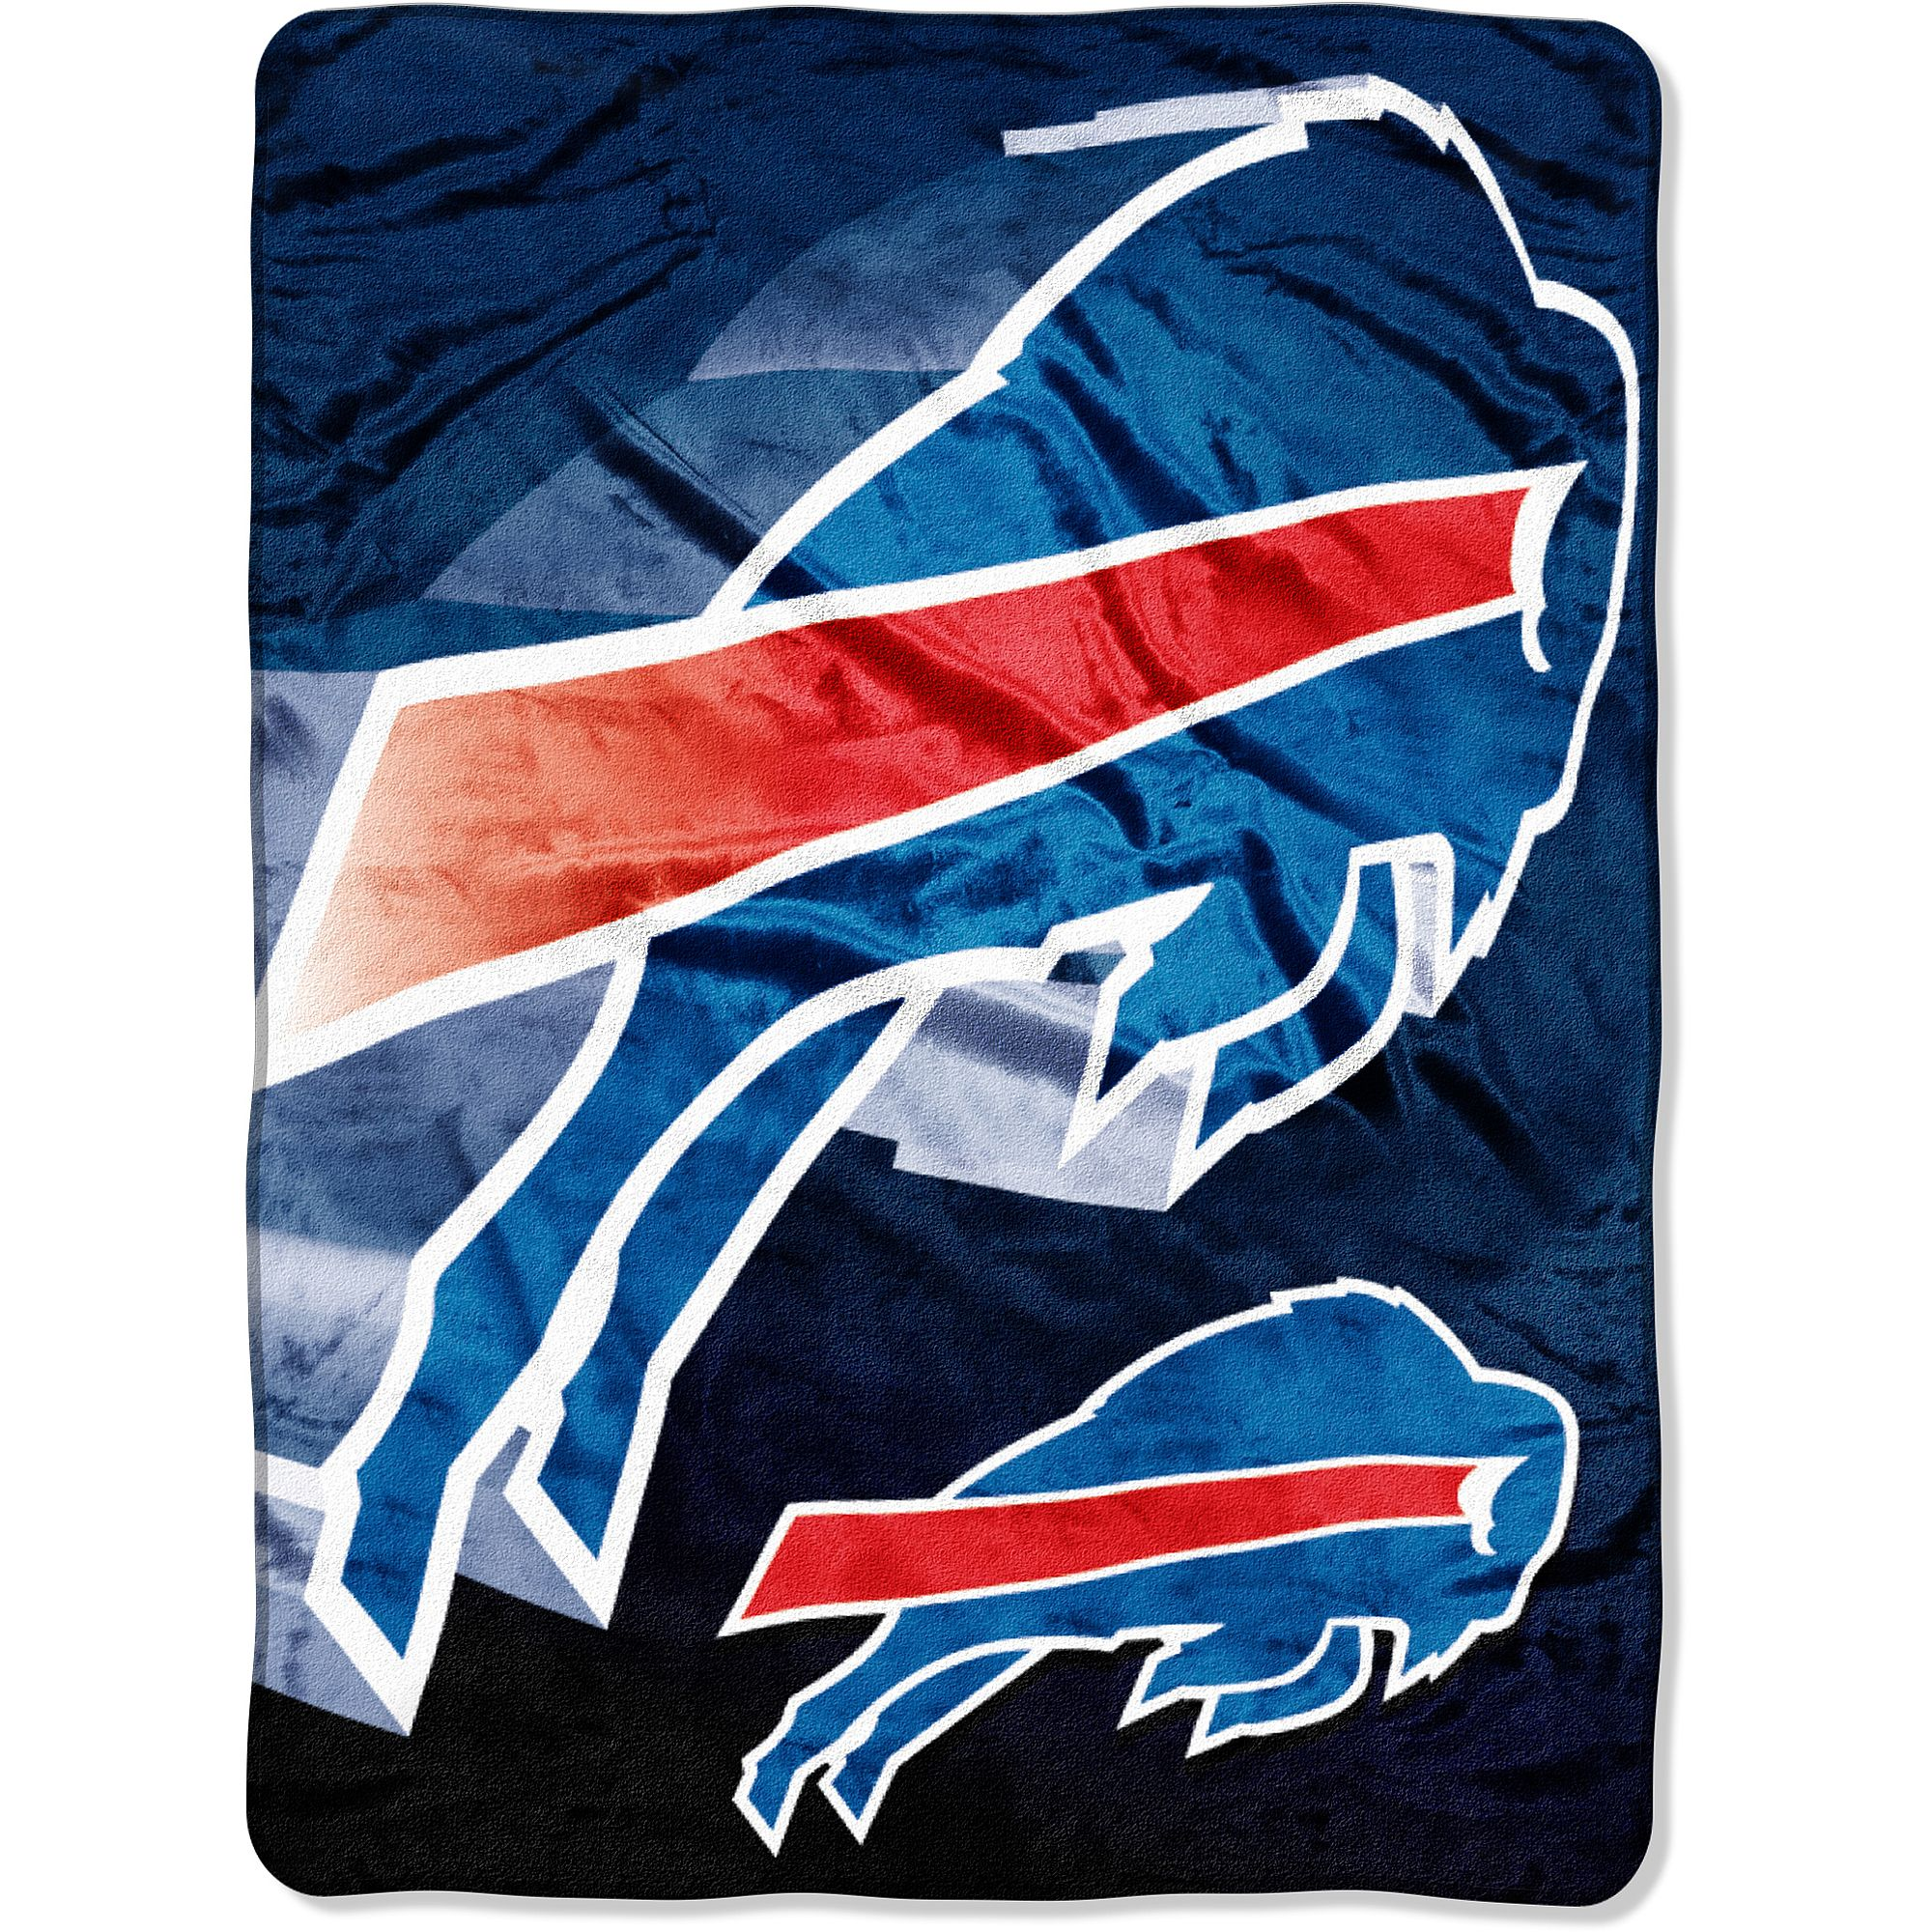 NFL Bills 60x80 Micro Raschel Blanket